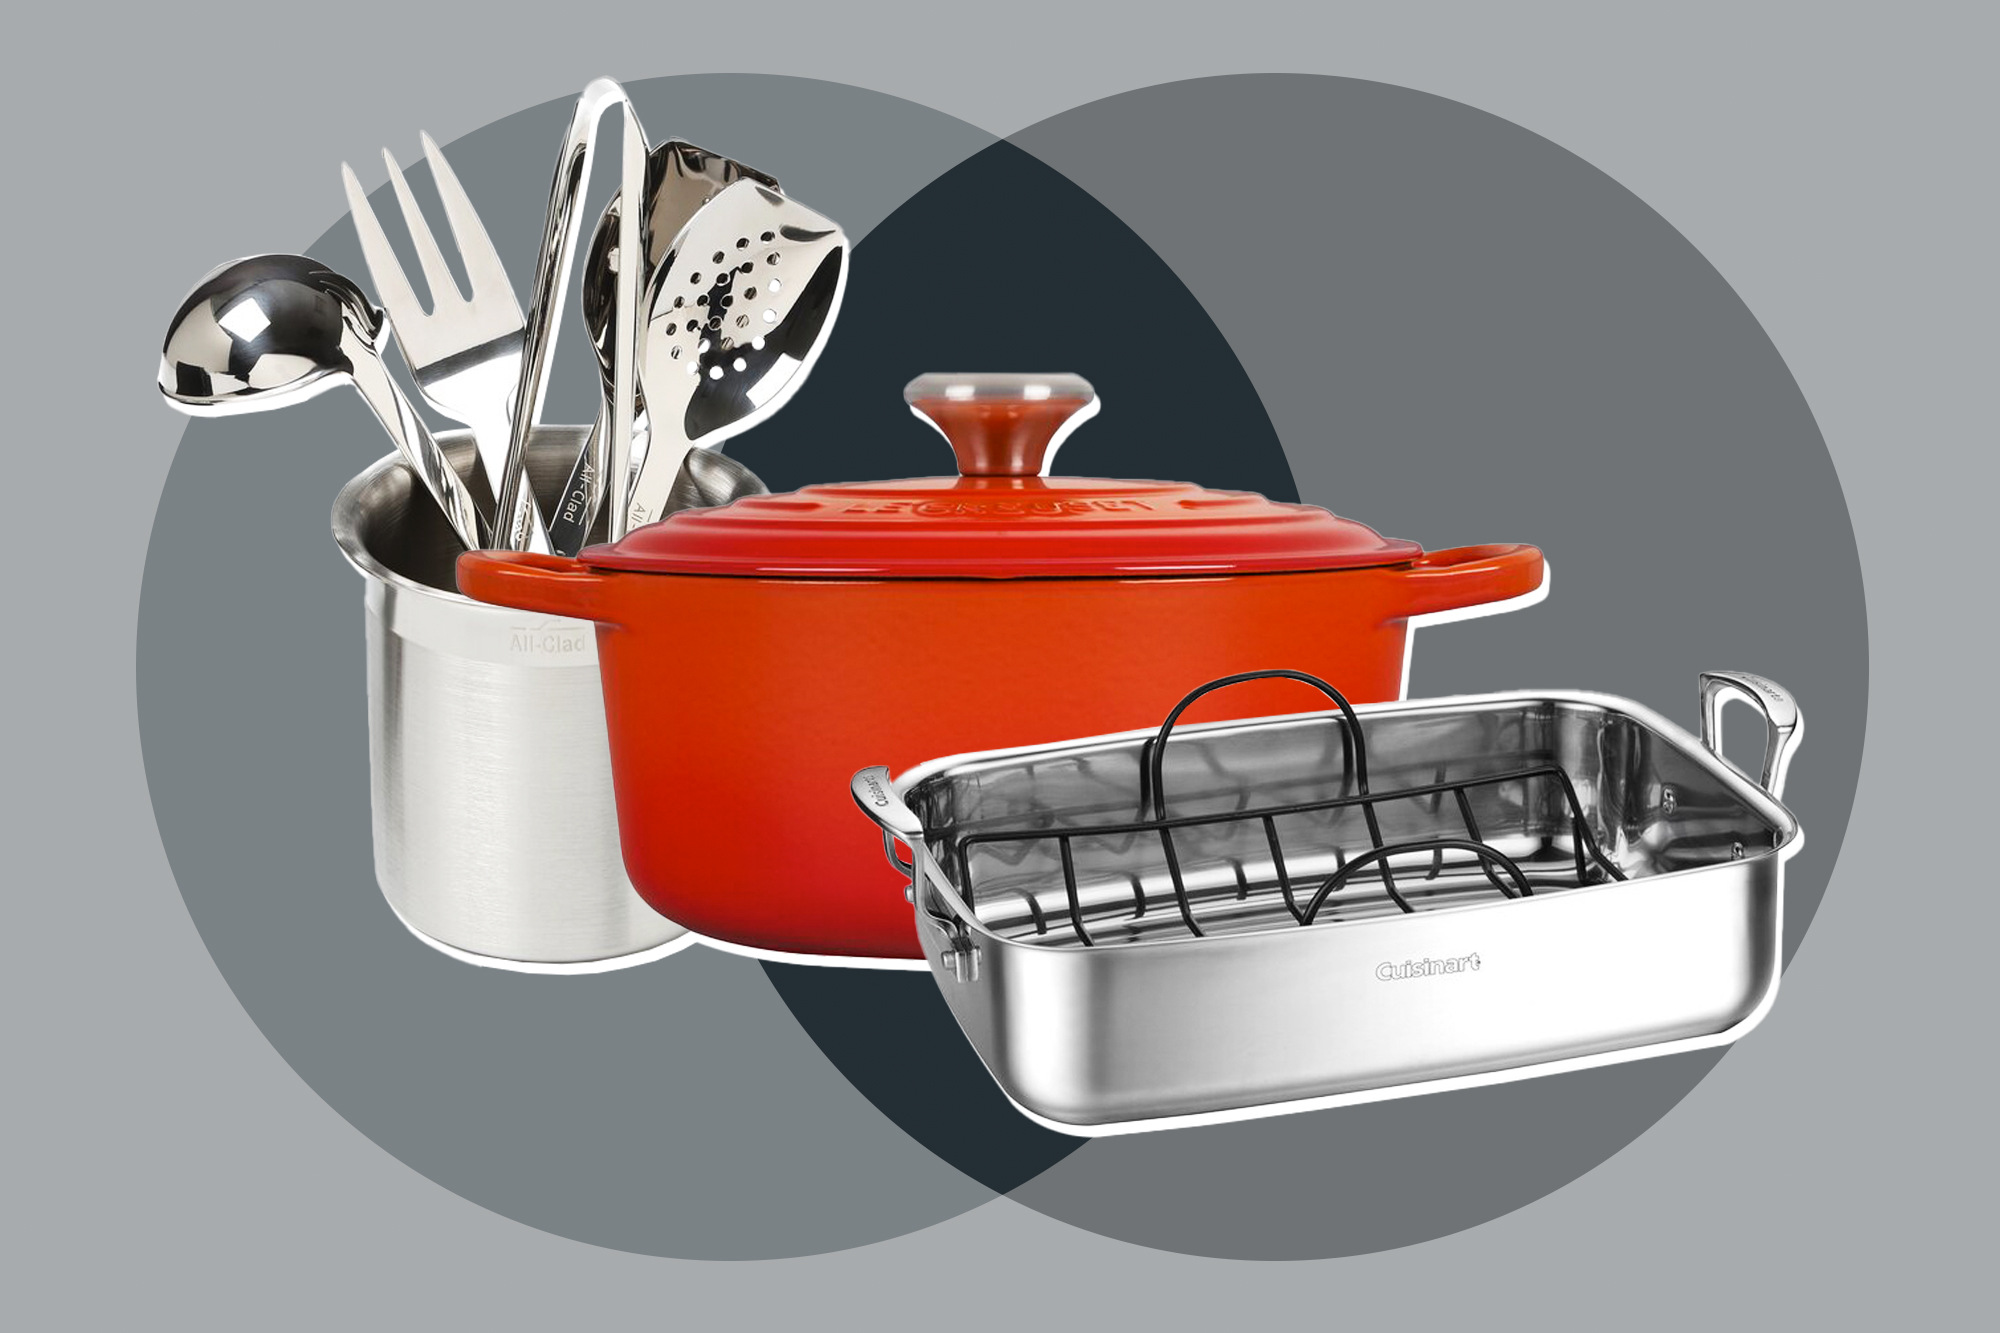 a dutch oven, a roasting pan, and a set of cooking utensils on a designed background